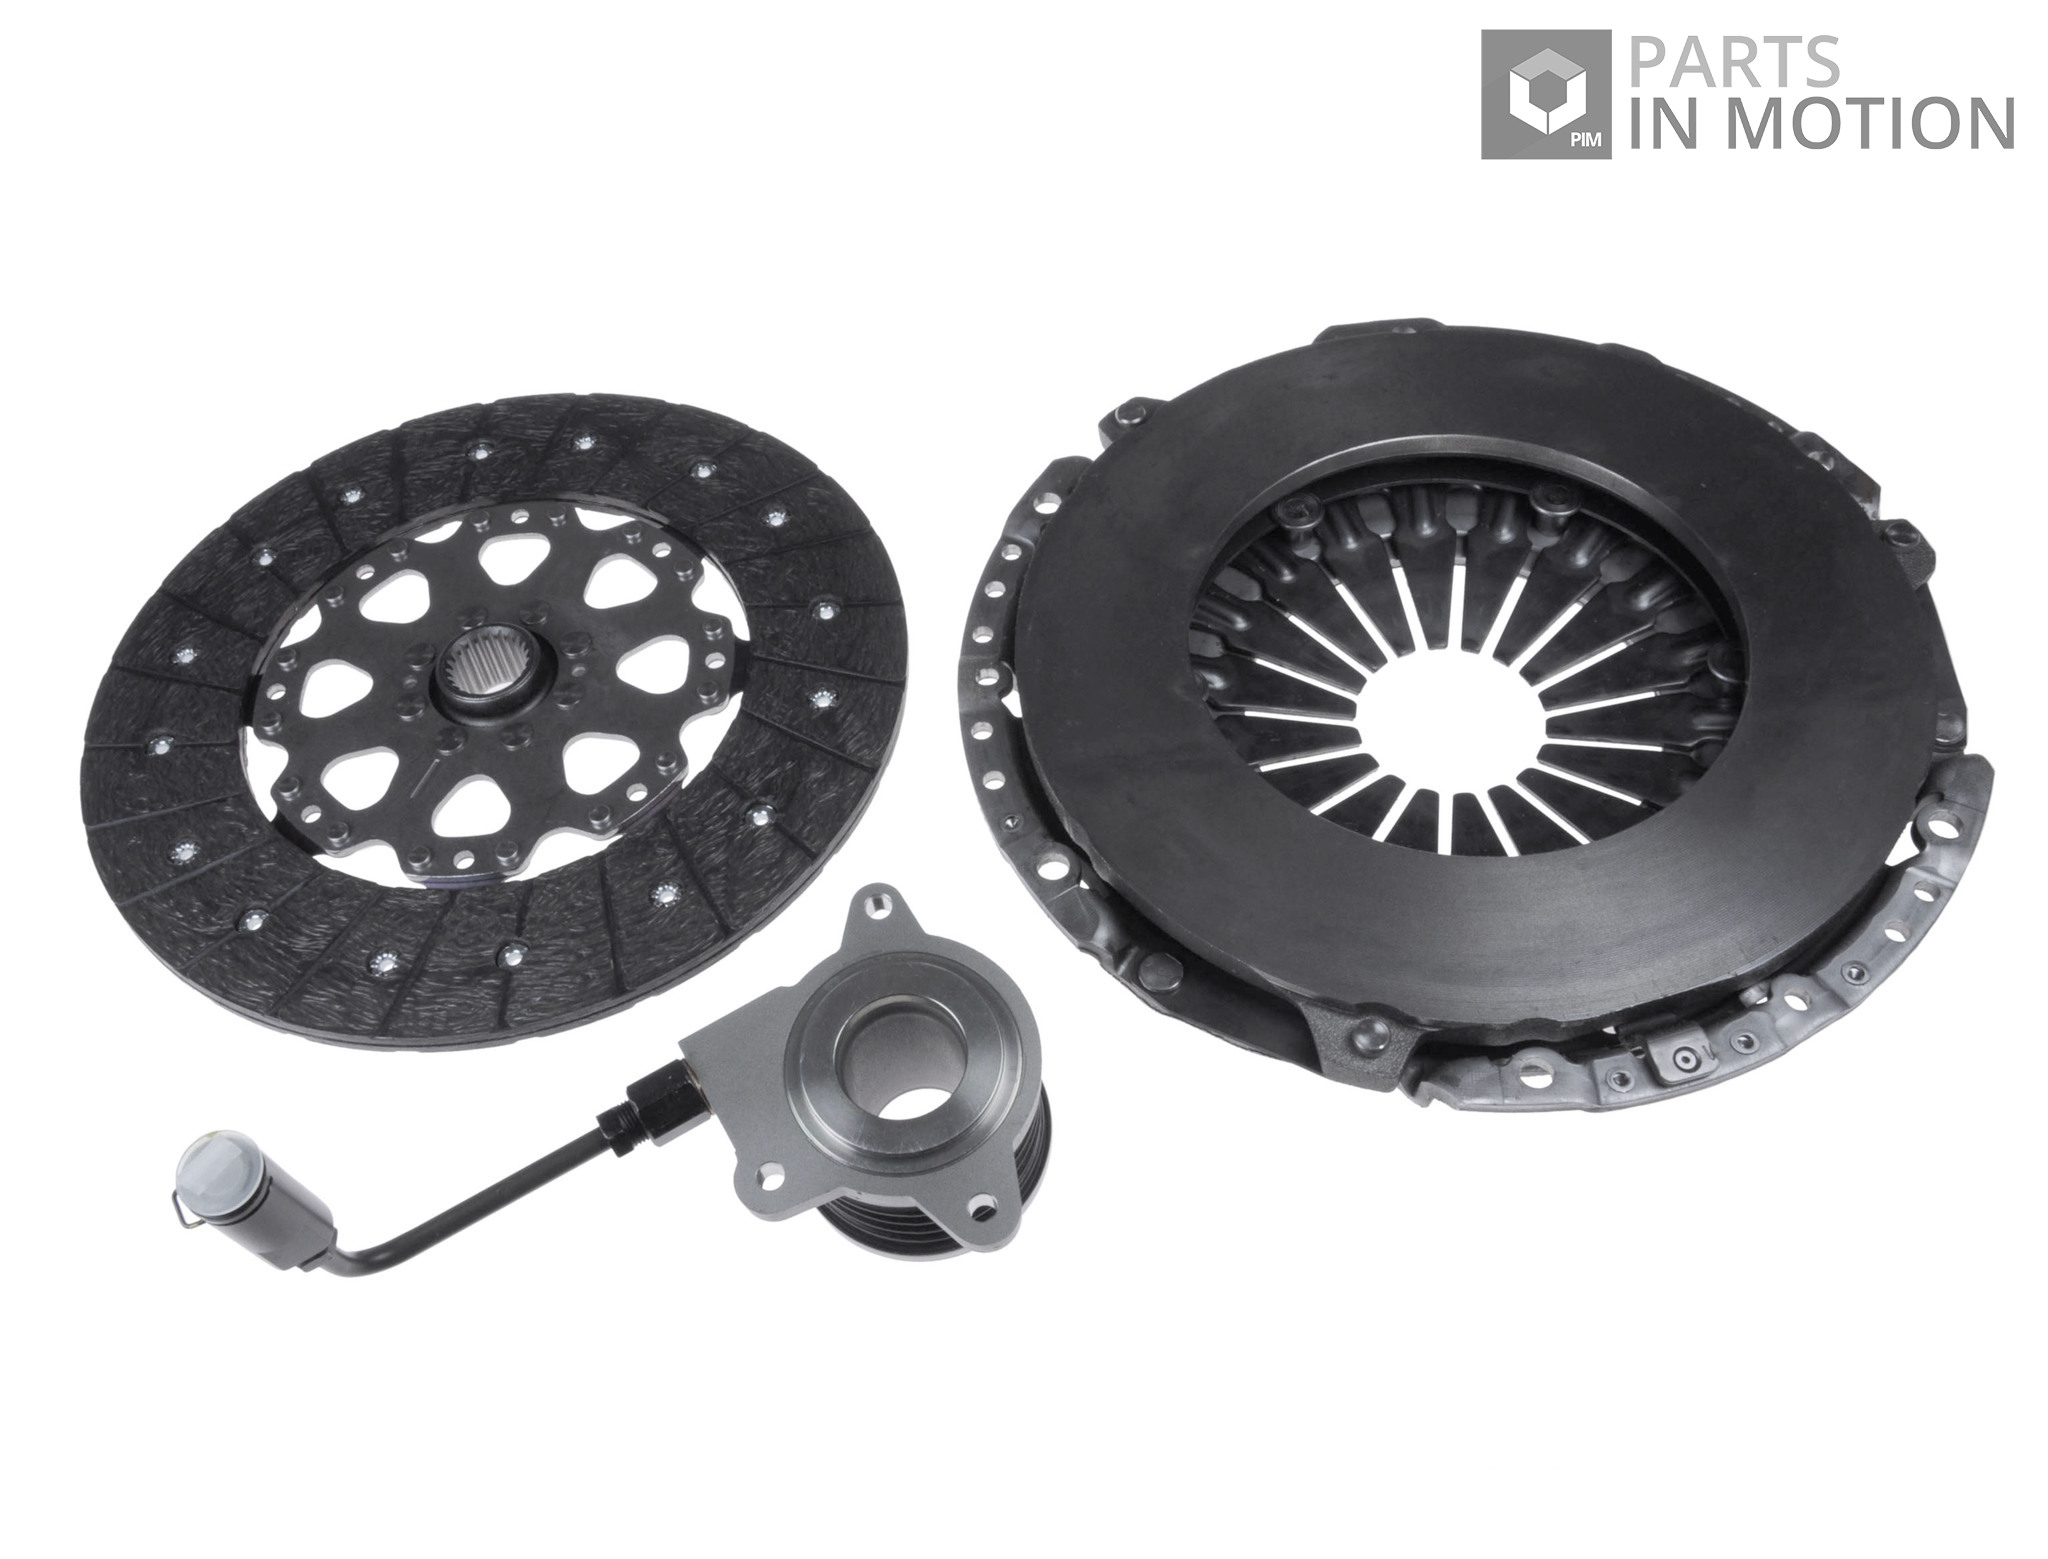 Clutch Kit 3pc Cover+Plate+Releaser fits KIA CEED JD 1.6D 2012 on D4FB LuK New